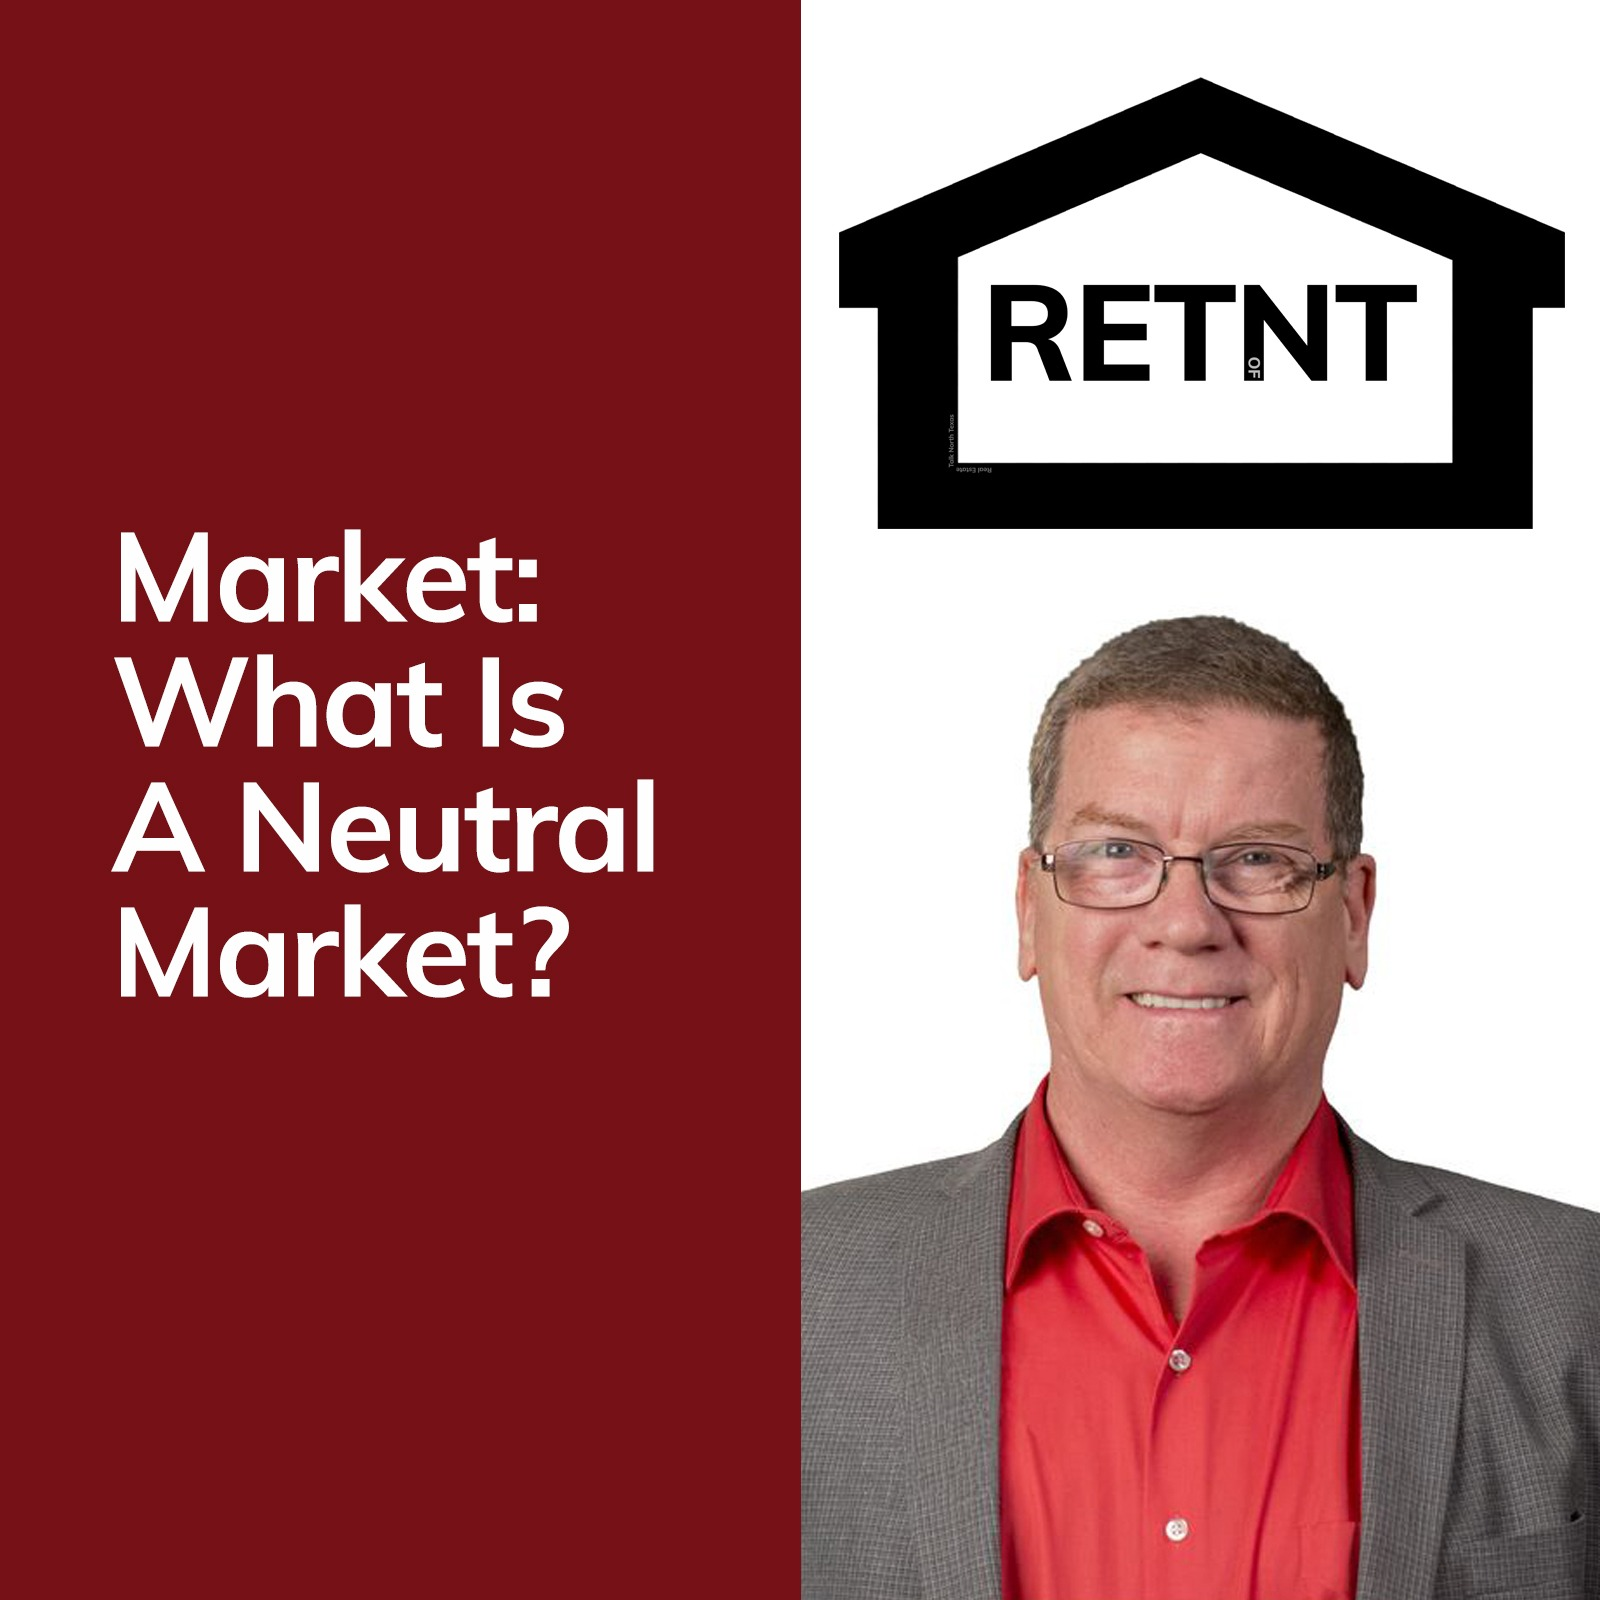 What Is A Neutral Market?